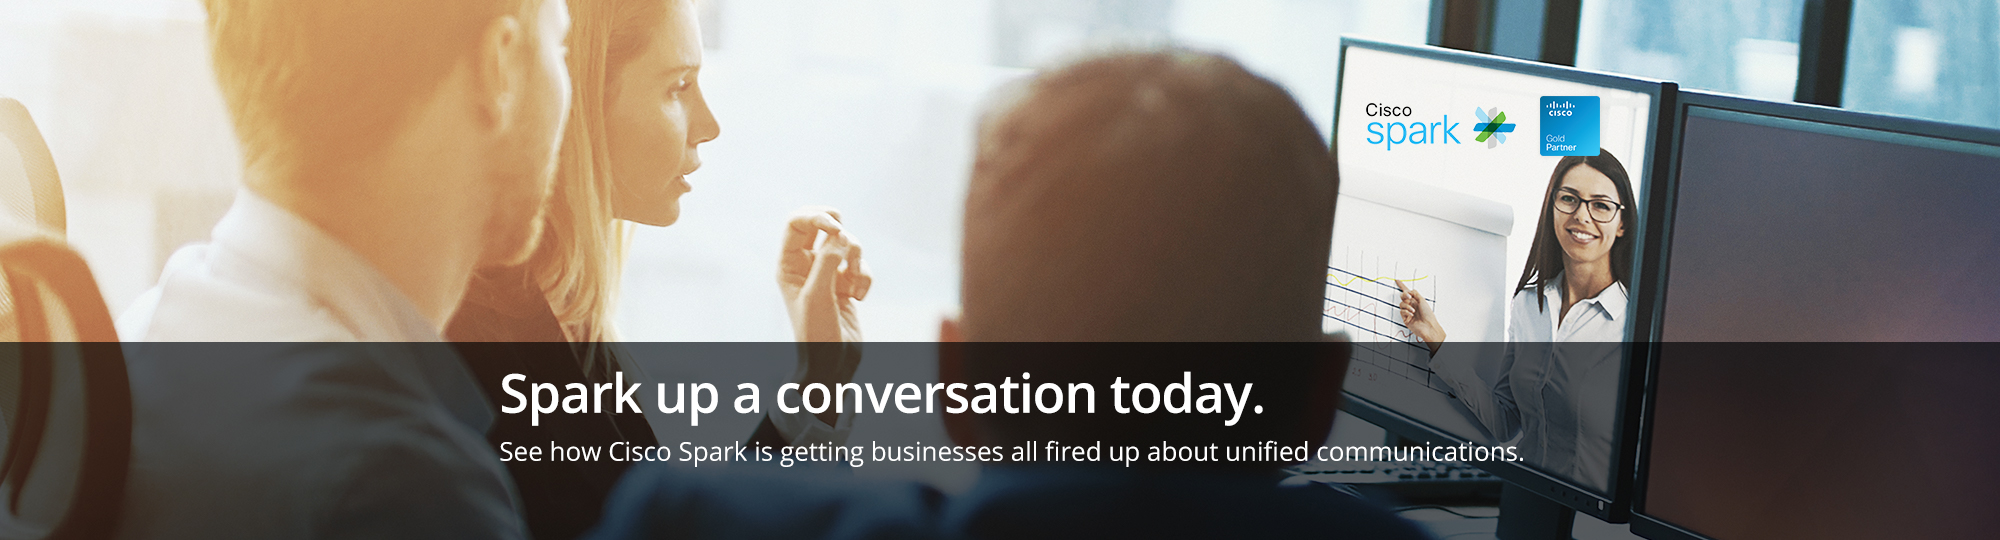 Spark up a conversation today. See how Cisco Spark is getting businesses all fired up about unified communications.